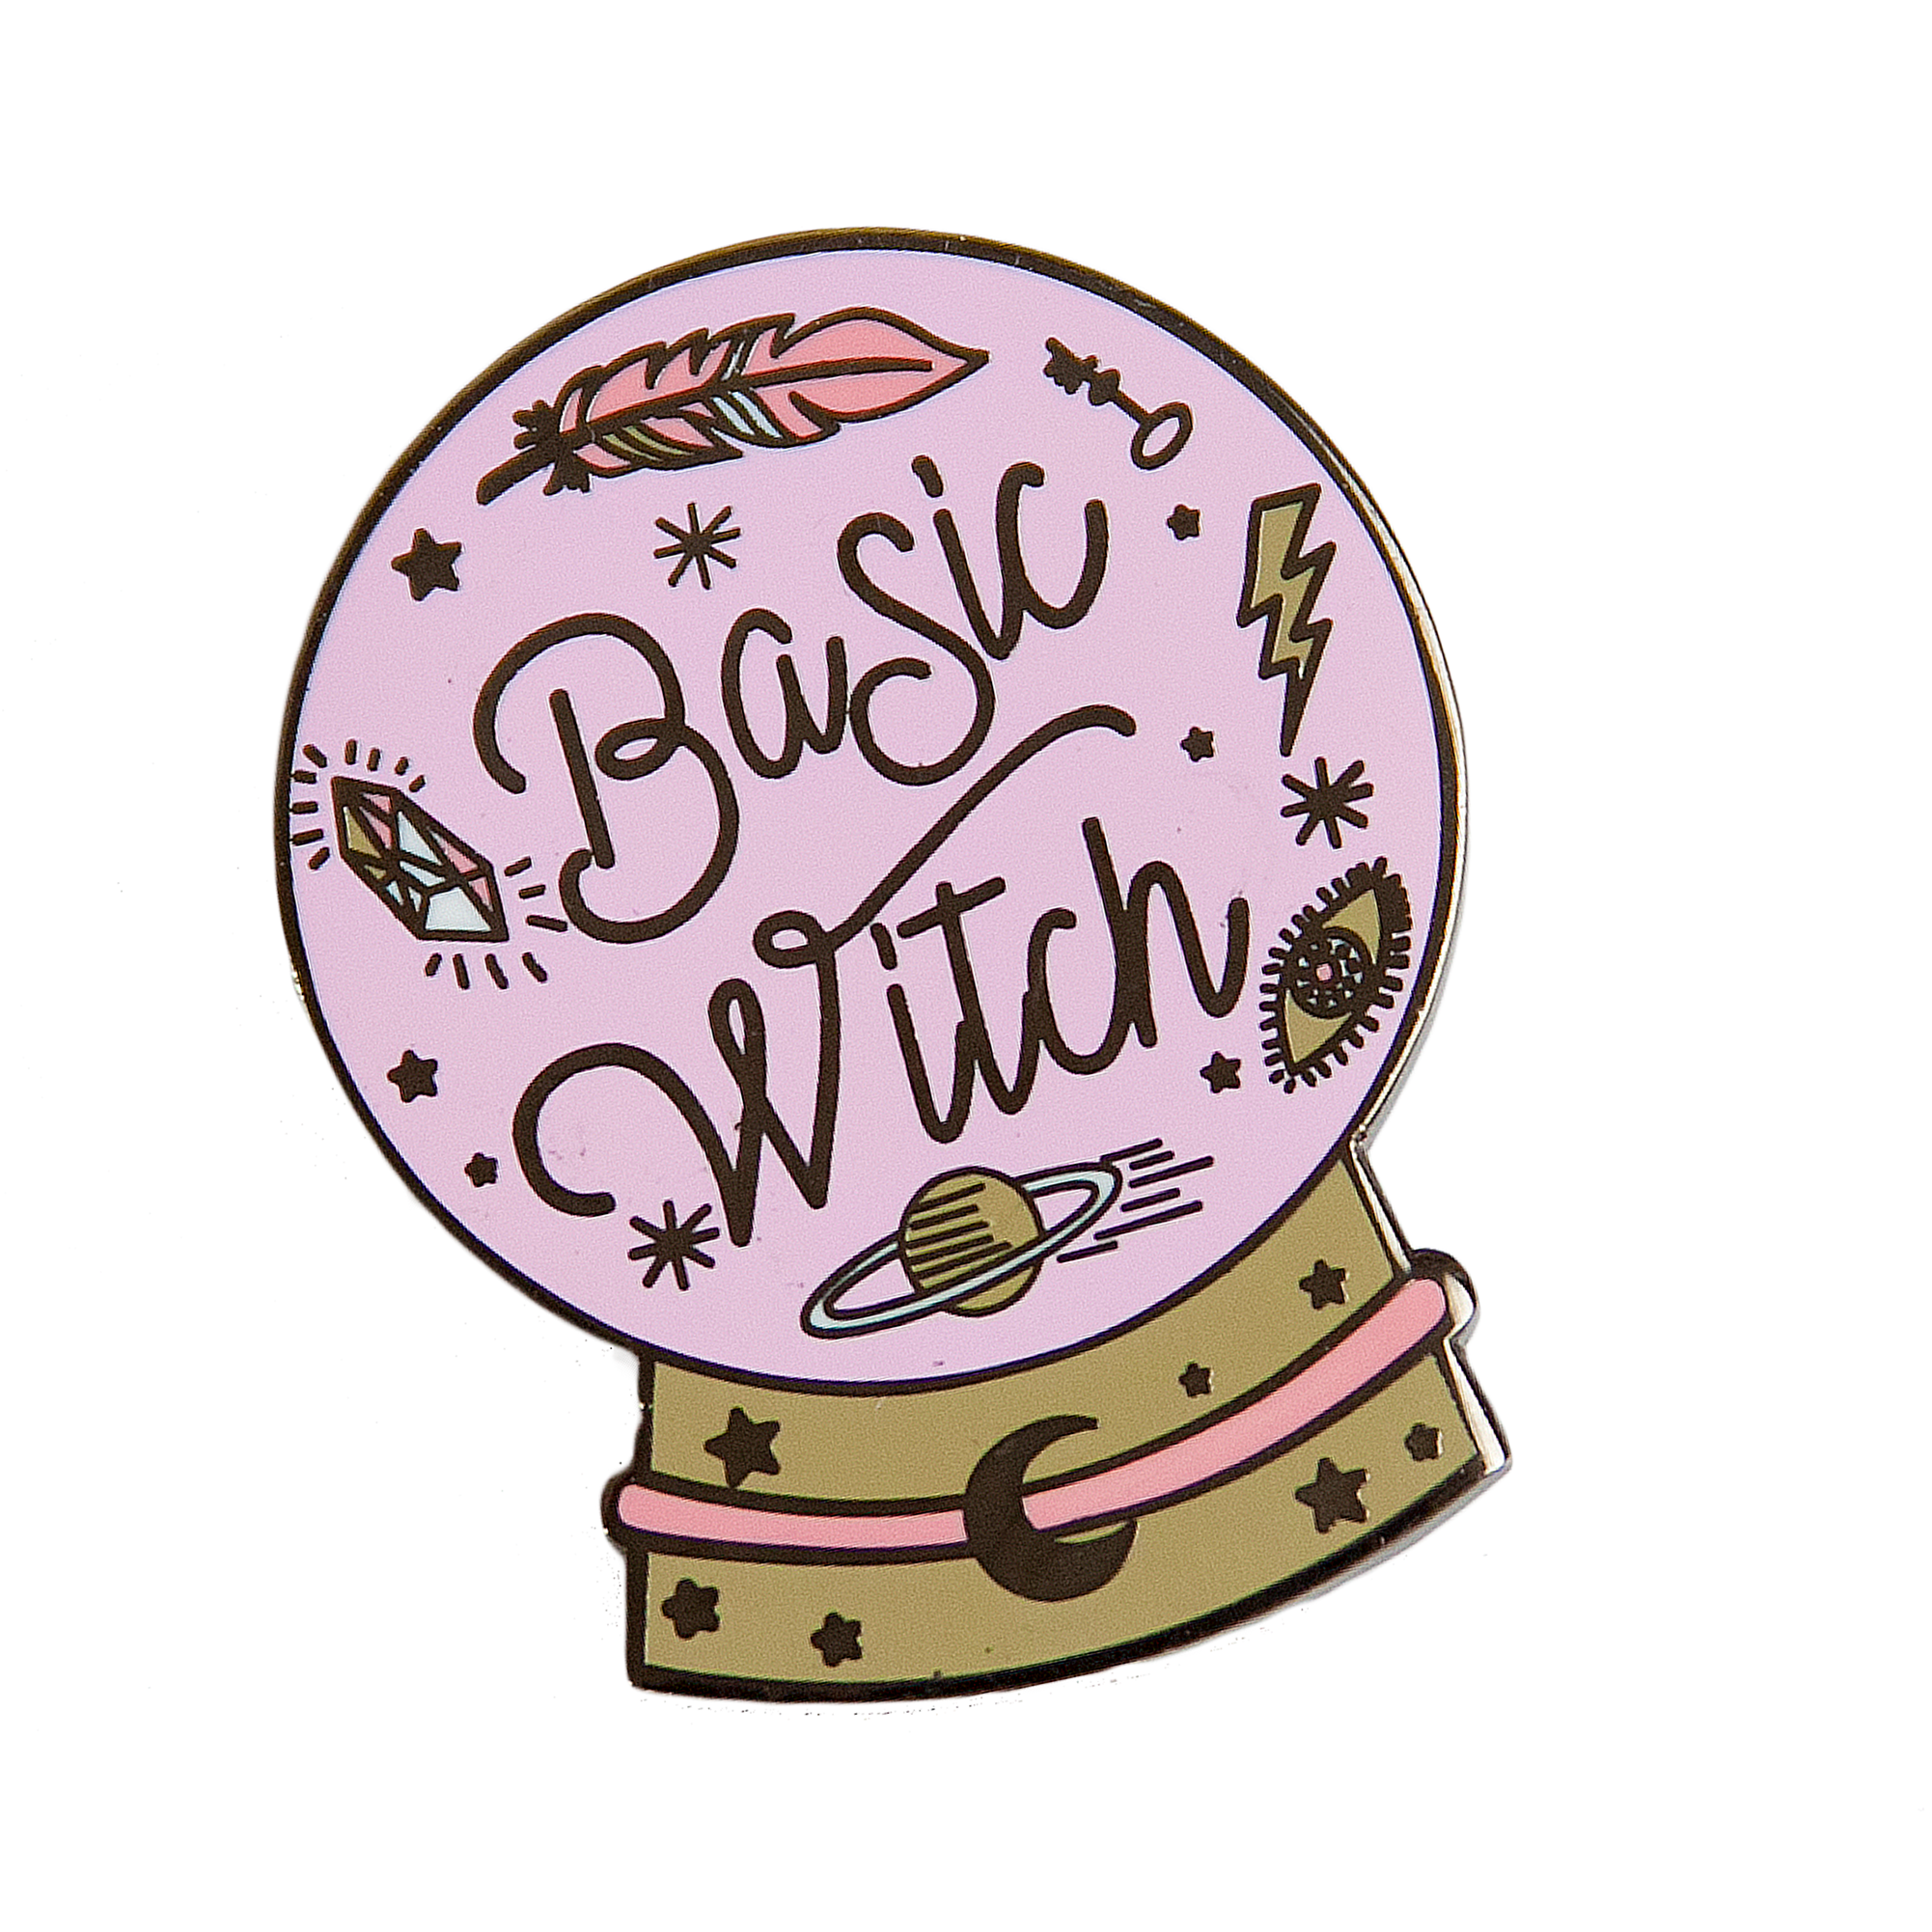 Basic Witch Crystal Ball Enamel Pin in 2019 Art I Like